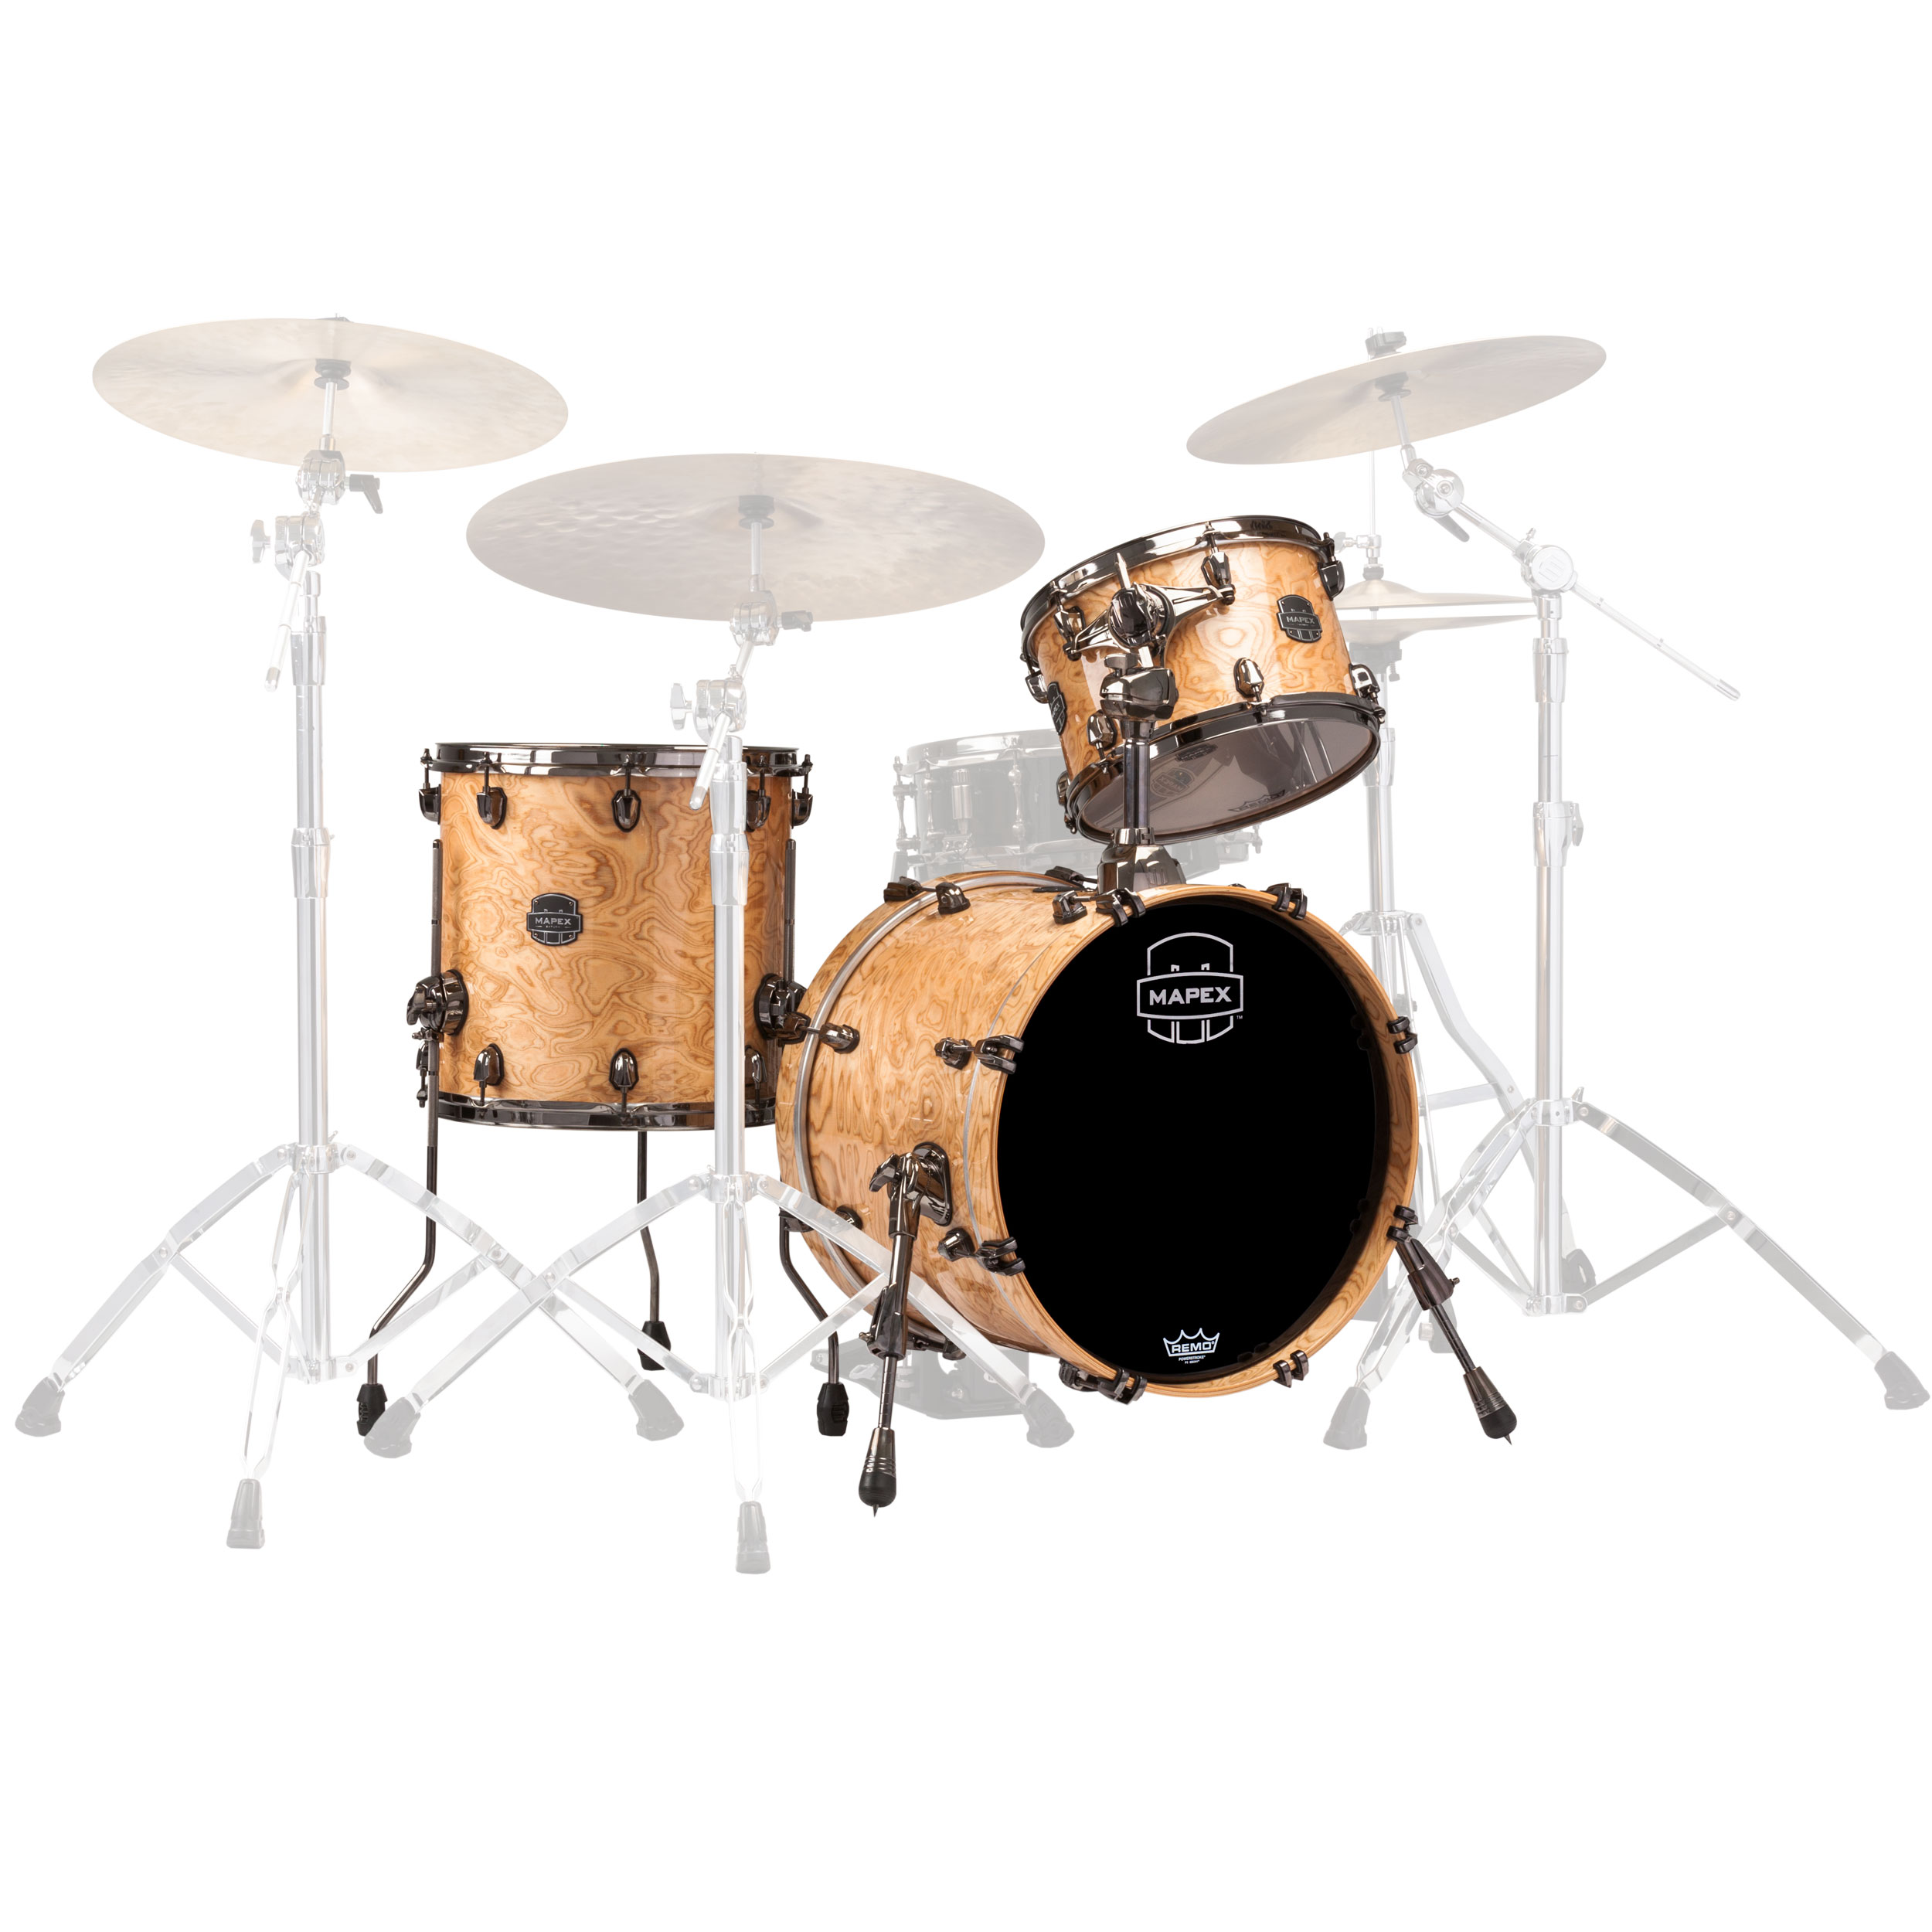 "Mapex Saturn V MH Exotic 3-Piece Jazz Drum Set Shell Pack (18"" Bass, 12/14"" Toms) in Natural Maple Burl"